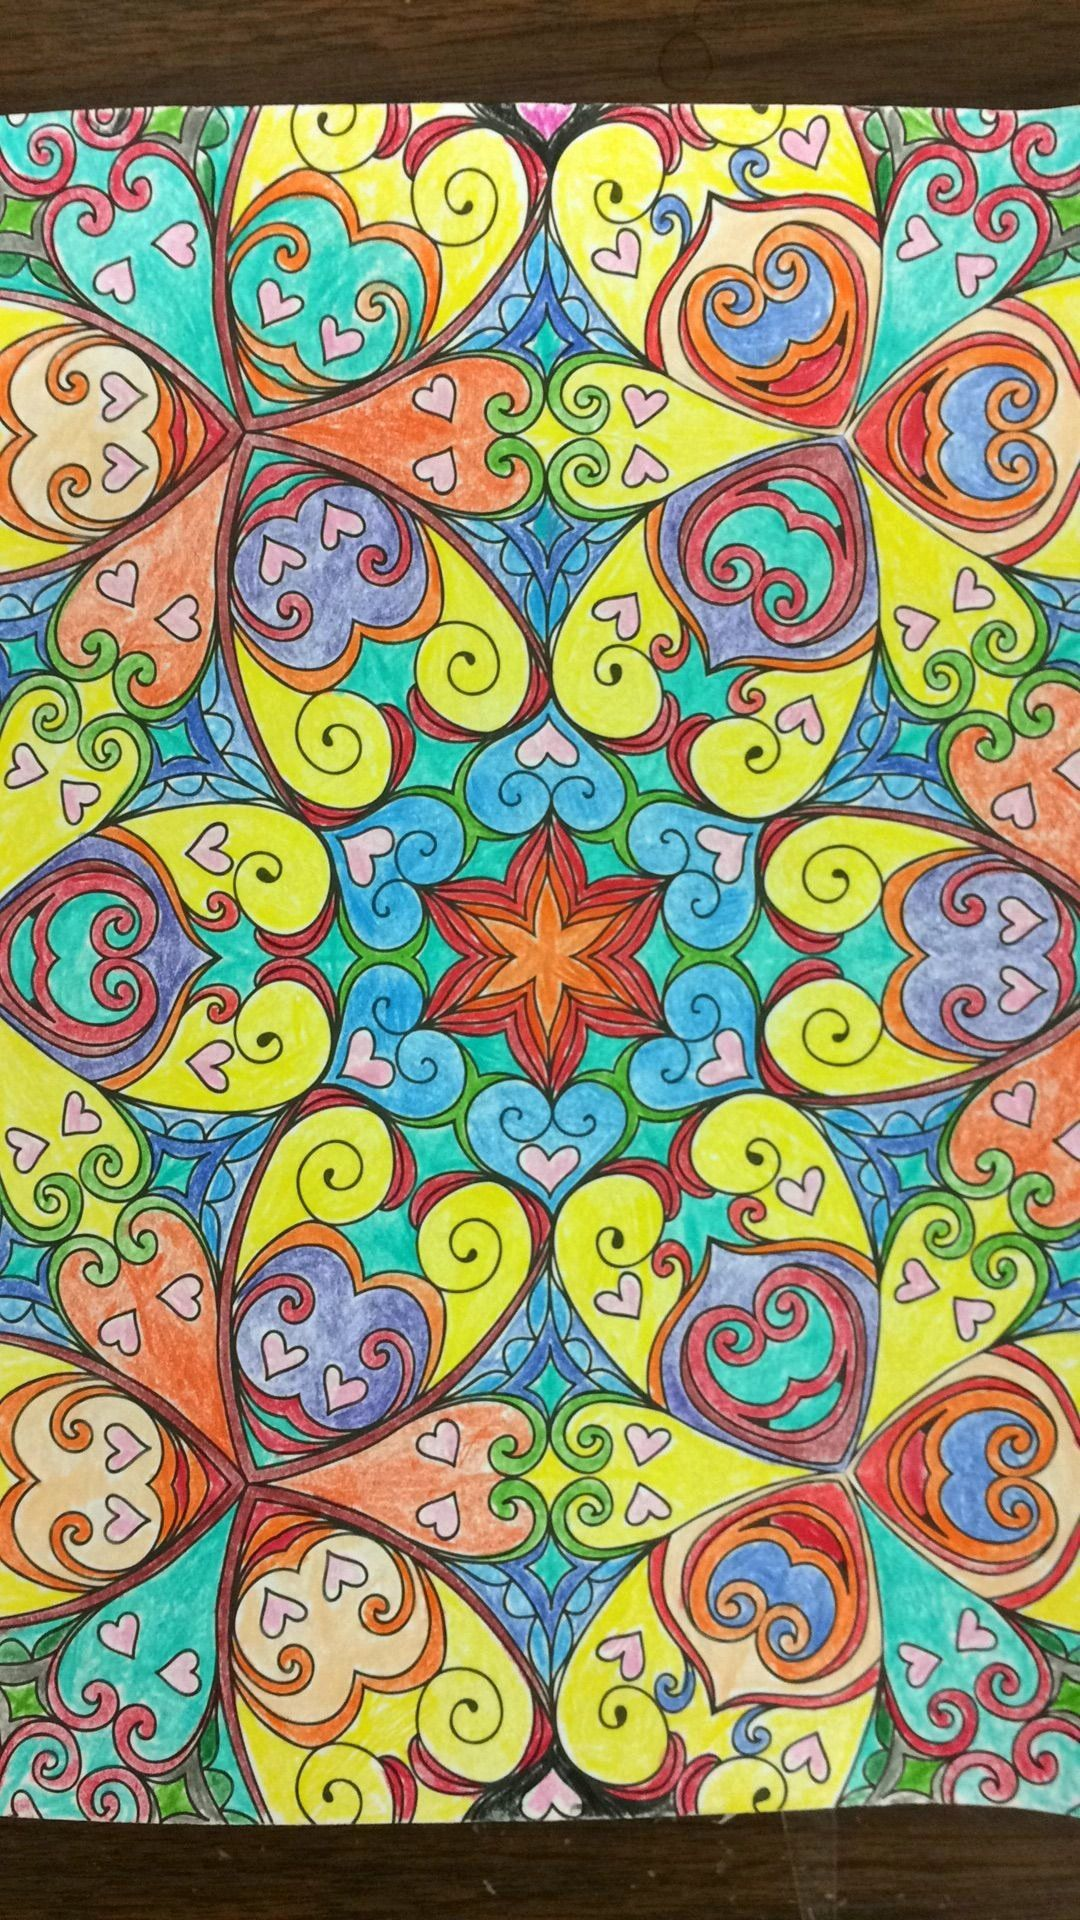 Color Art Coloring Books Awesome Kaleidoscope Wonders Color Art For Everyone In 2020 Colorful Art Millie Marotta Coloring Book Coloring Books